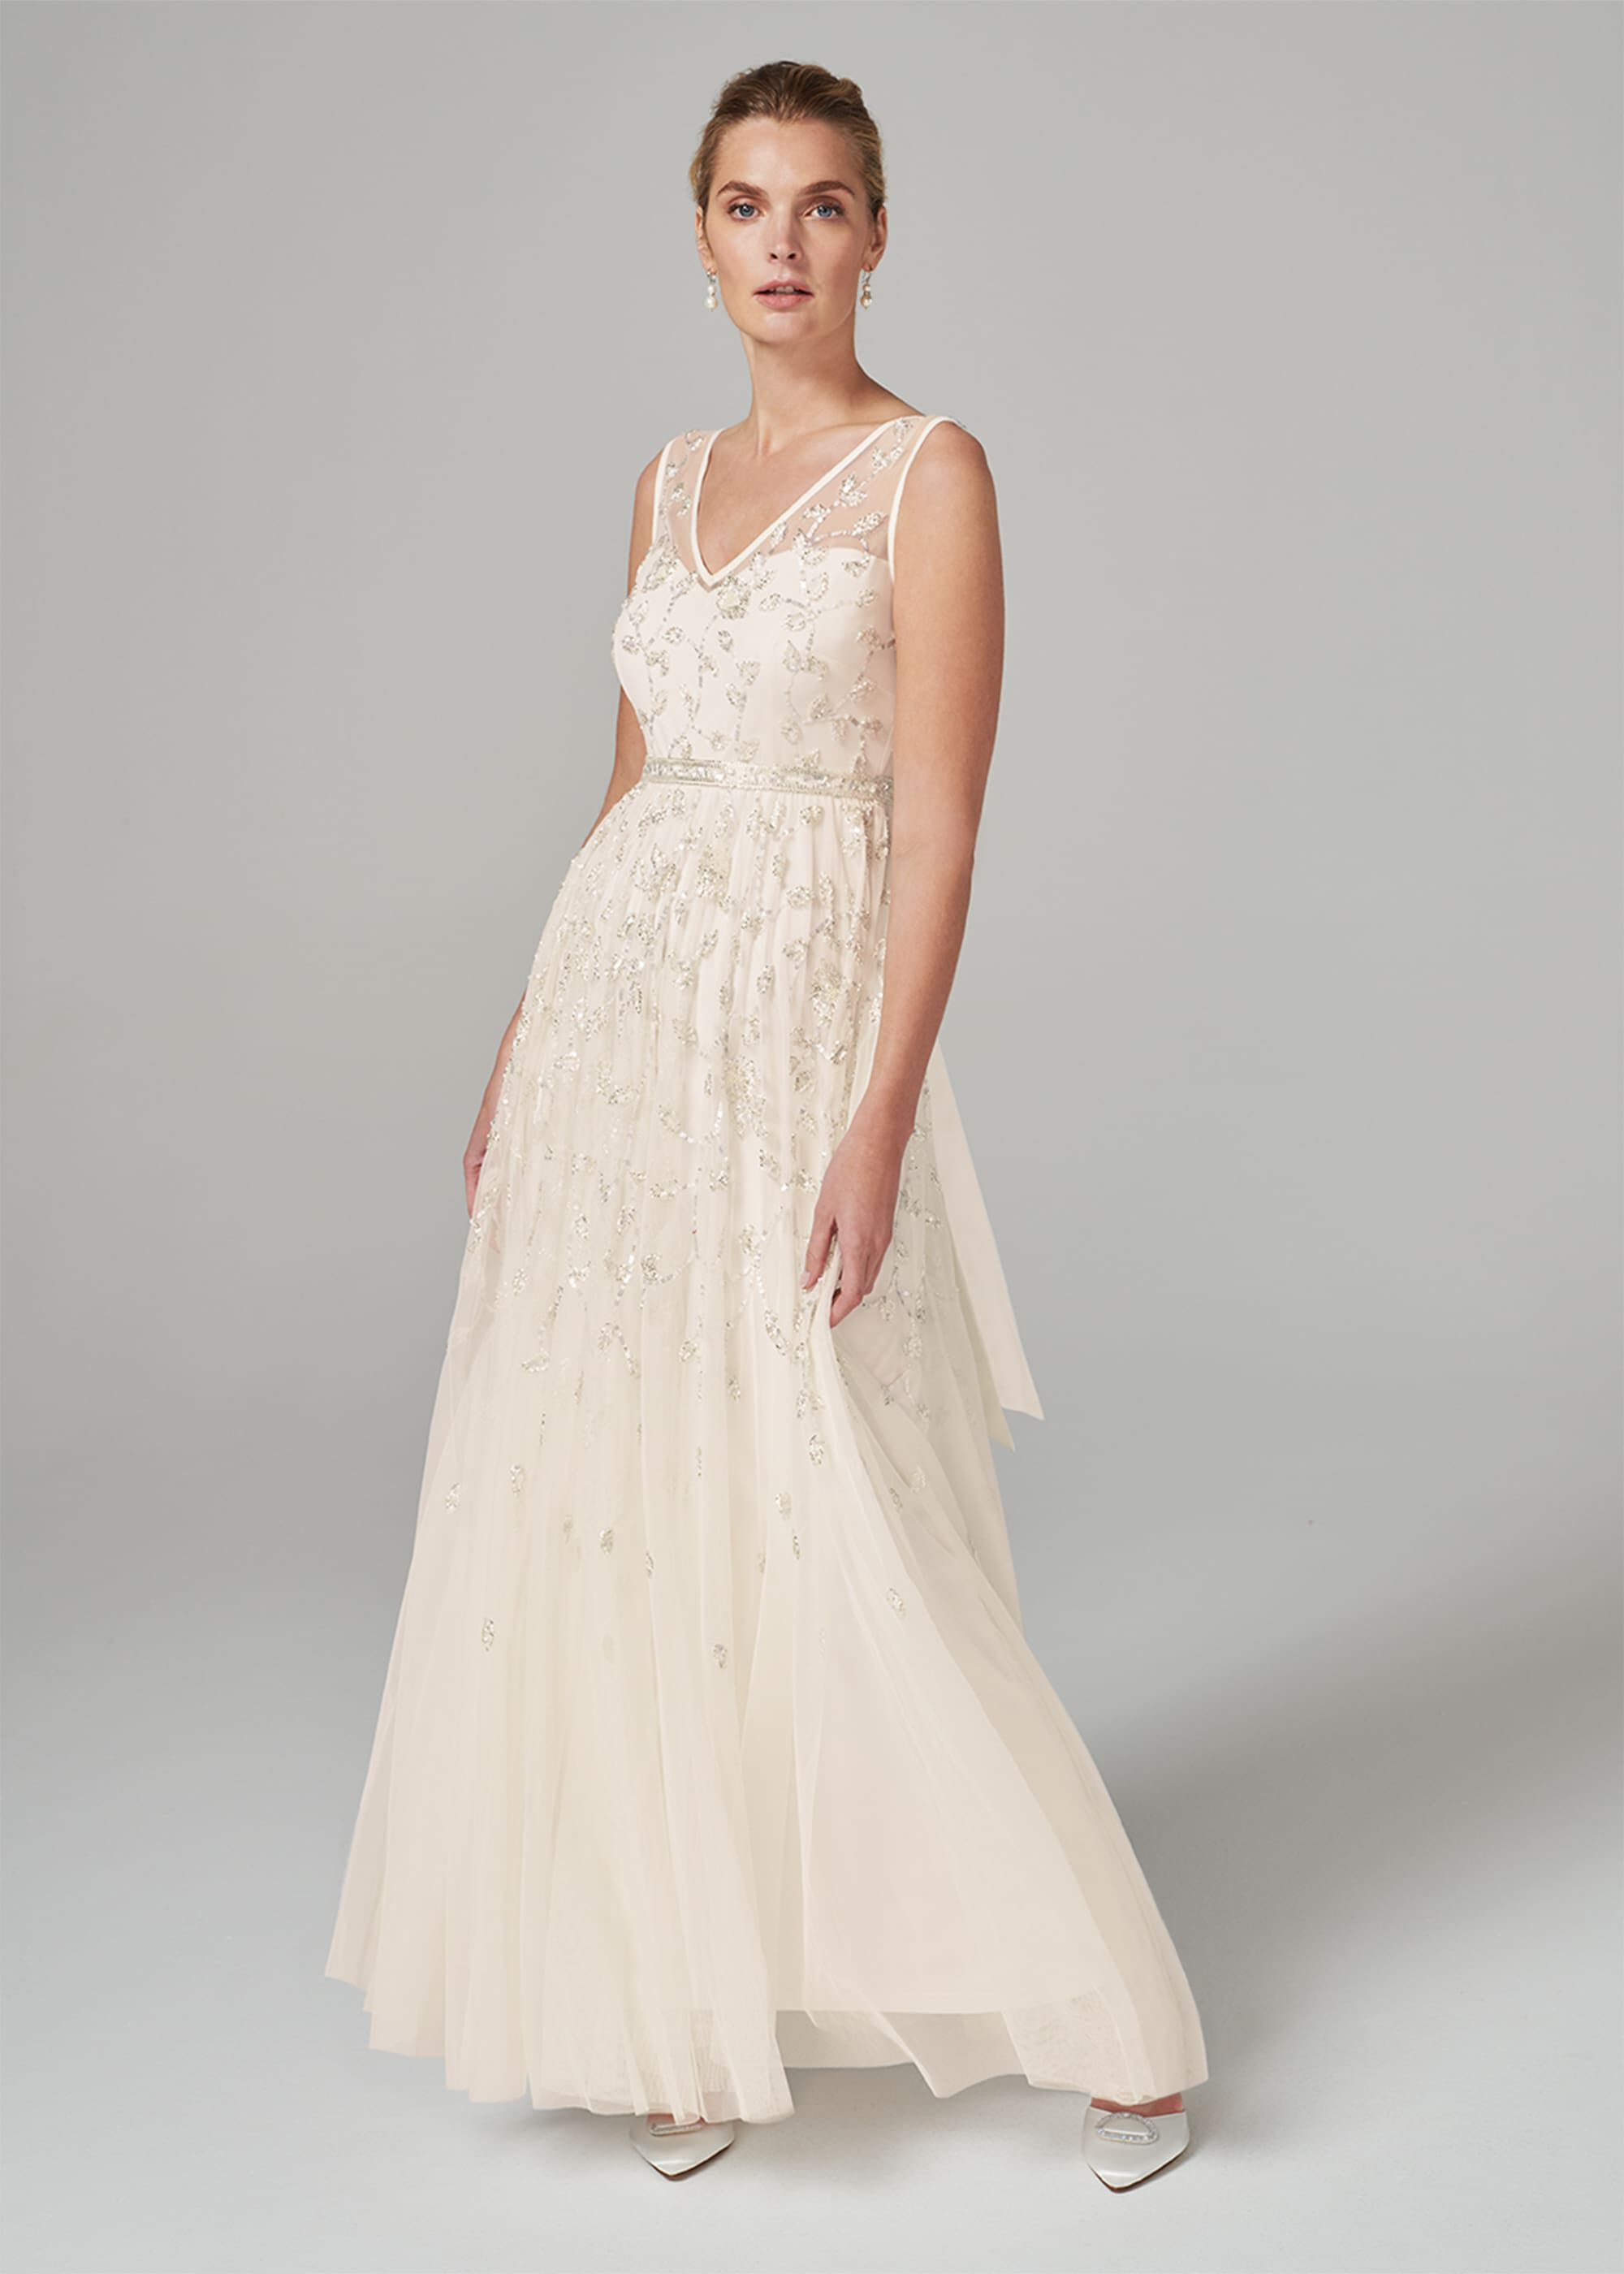 Phase Eight Millicent Beaded Wedding Dress, Cream, Maxi